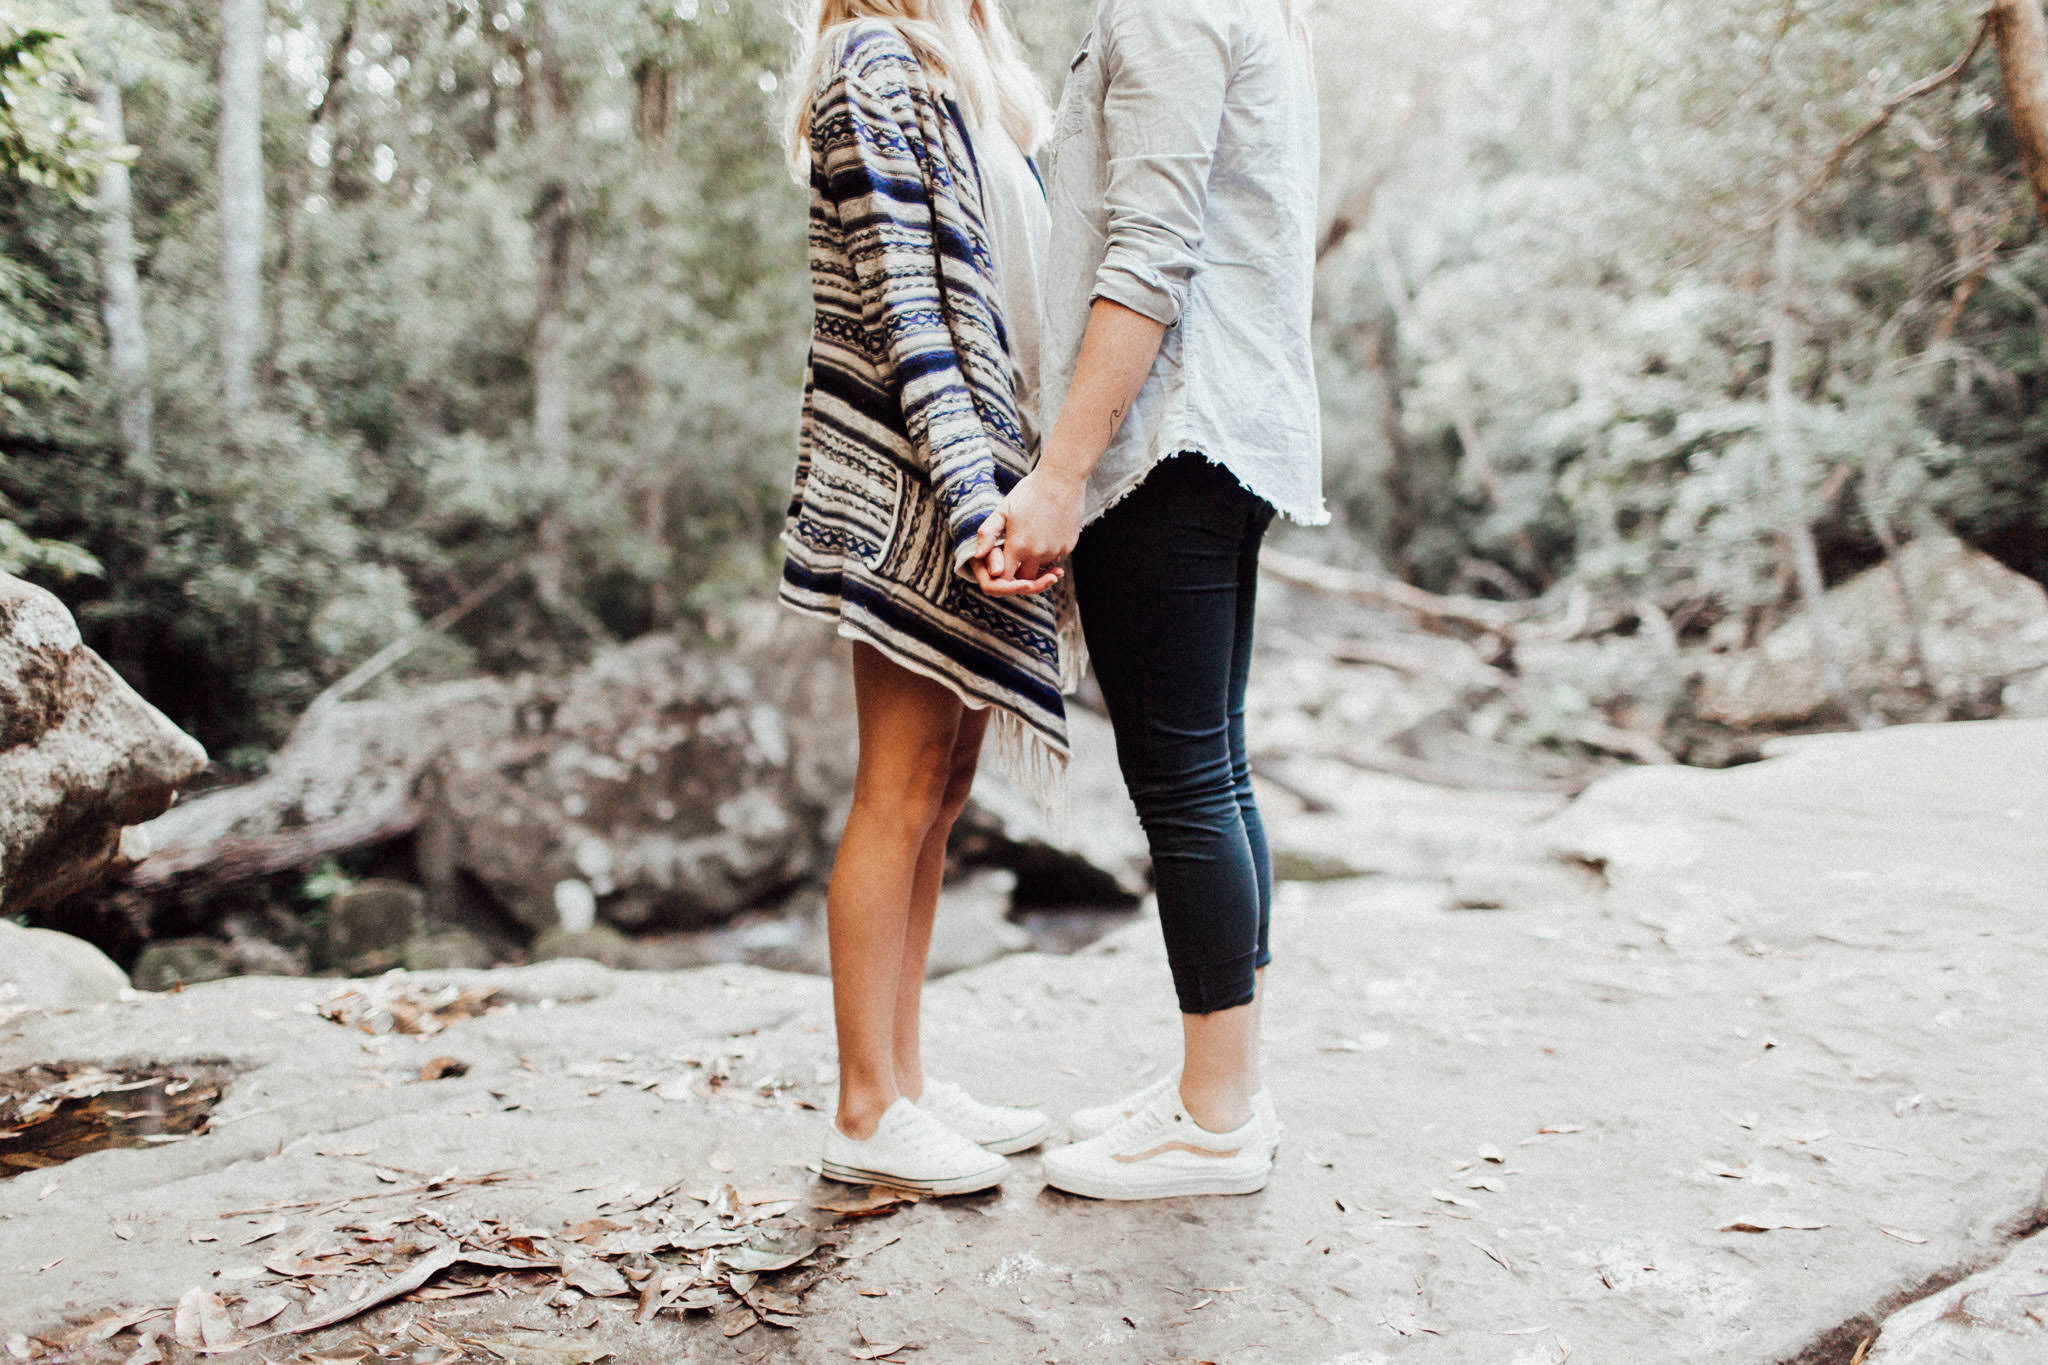 Bri_Gem_Proposal_LaurenAnnePhotography-1033.jpg